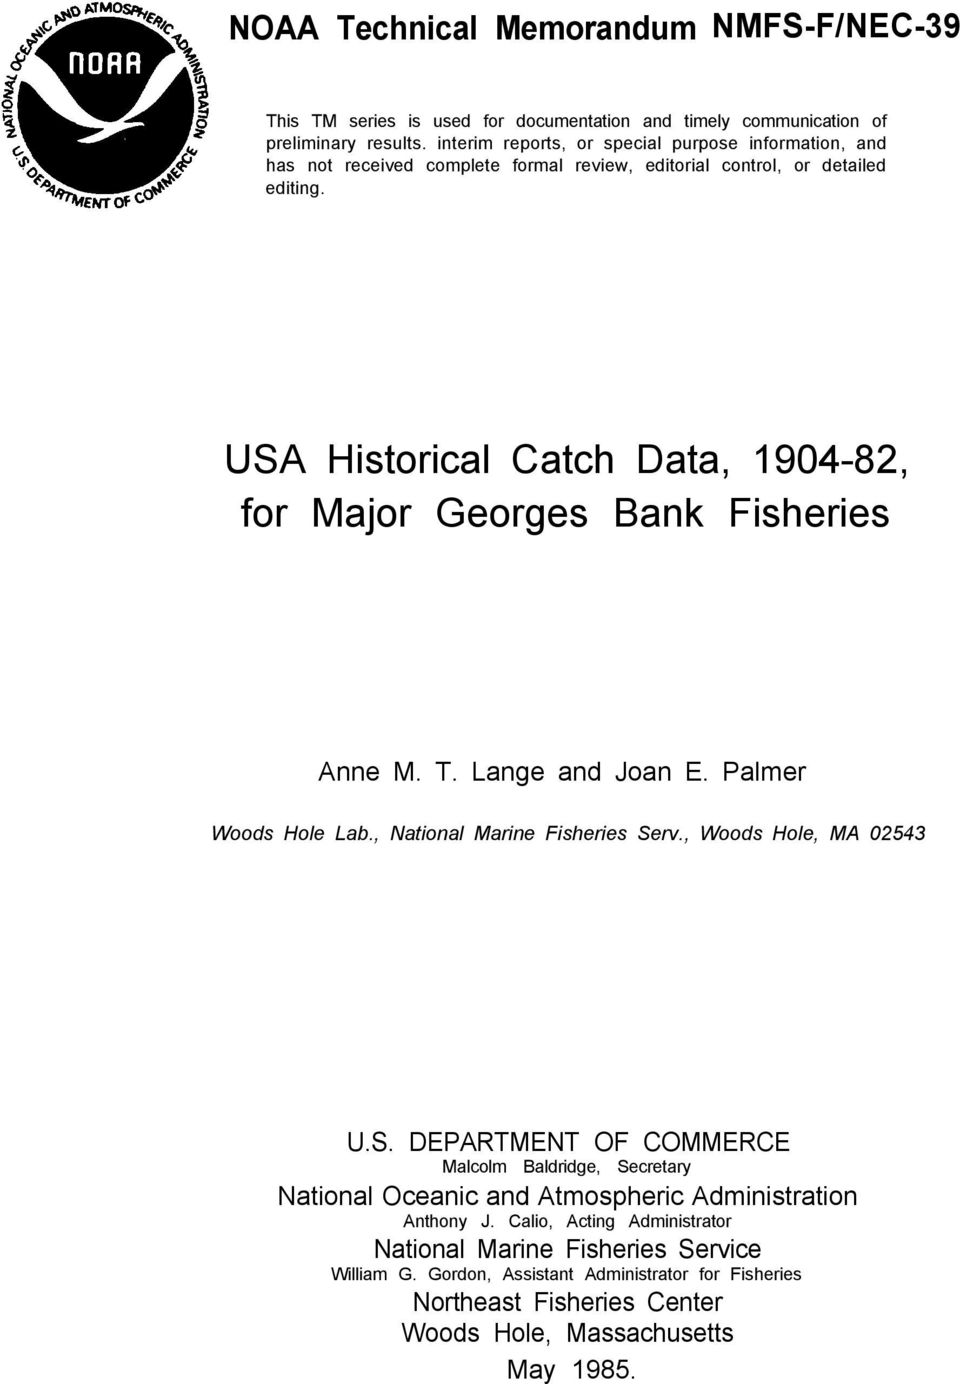 USA Historical Catch Data, 1904-82, for Major Georges Bank Fisheries Anne M. T. Lange and Joan E. Palmer Woods Hole Lab., National Marine Fisheries Serv., Woods Hole, MA 02543 U.S. DEPARTMENT OF COMMERCE Malcolm Baldridge, Secretary National Oceanic and Atmospheric Administration Anthony J.